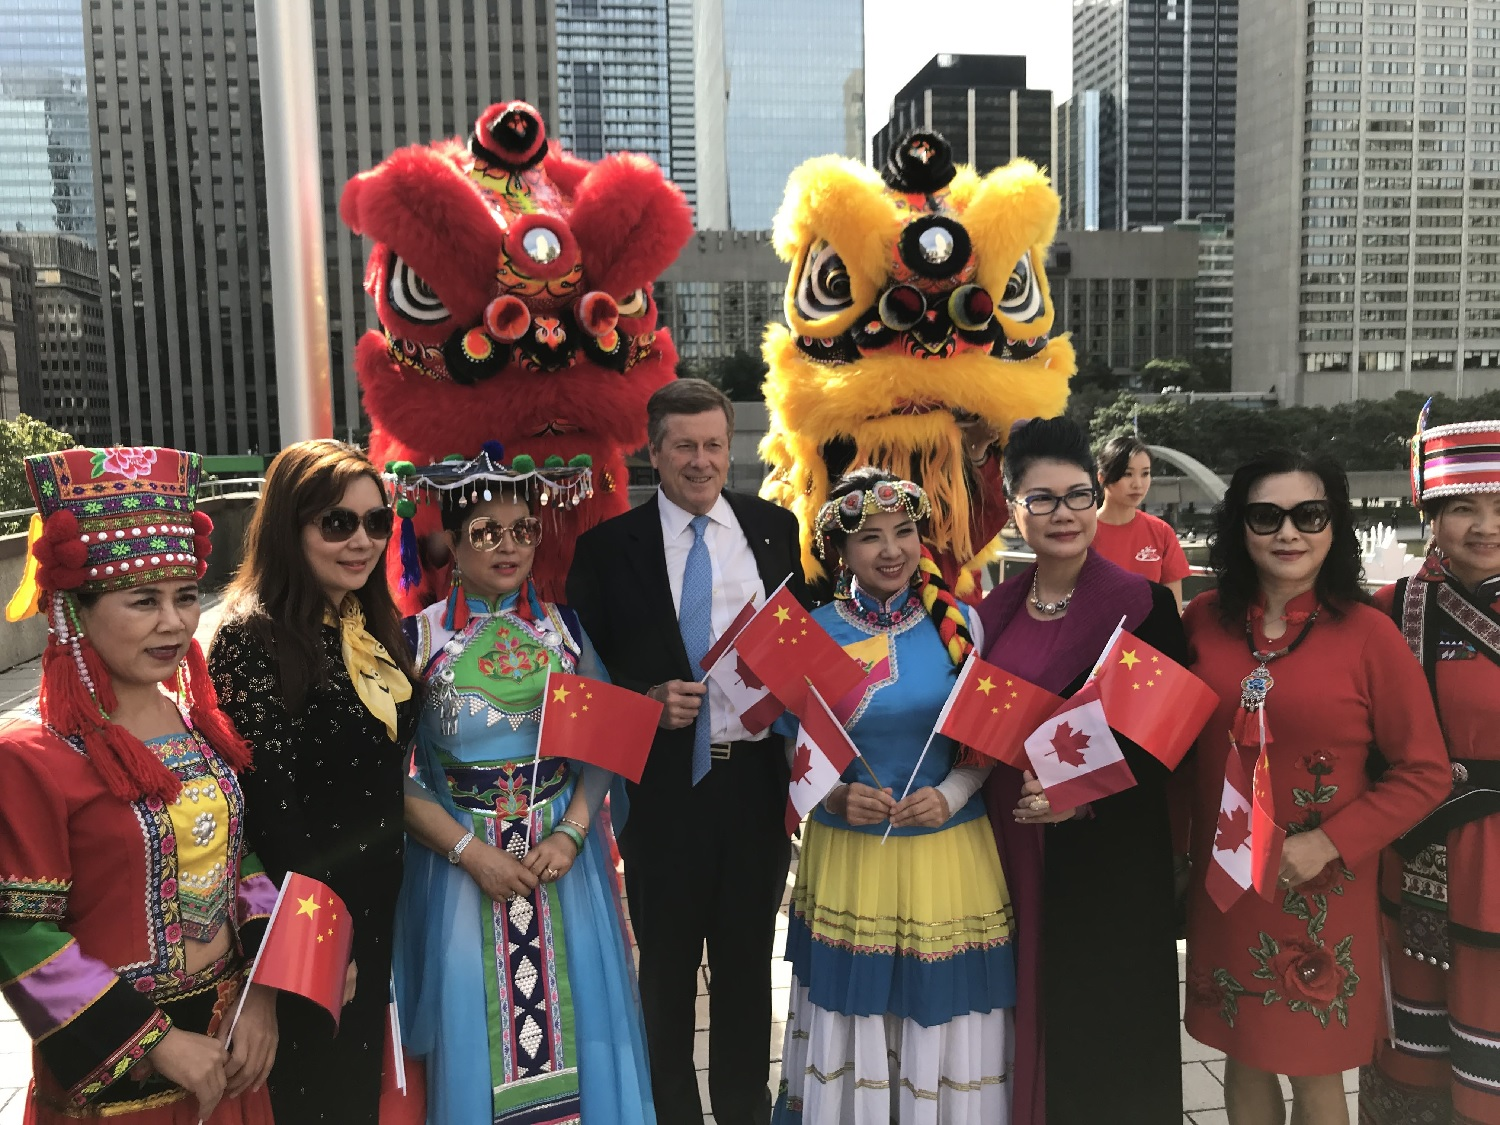 wayland-li-wushu-toronto-china-national-day-flag-raising-city-hall-2018-08.jpg